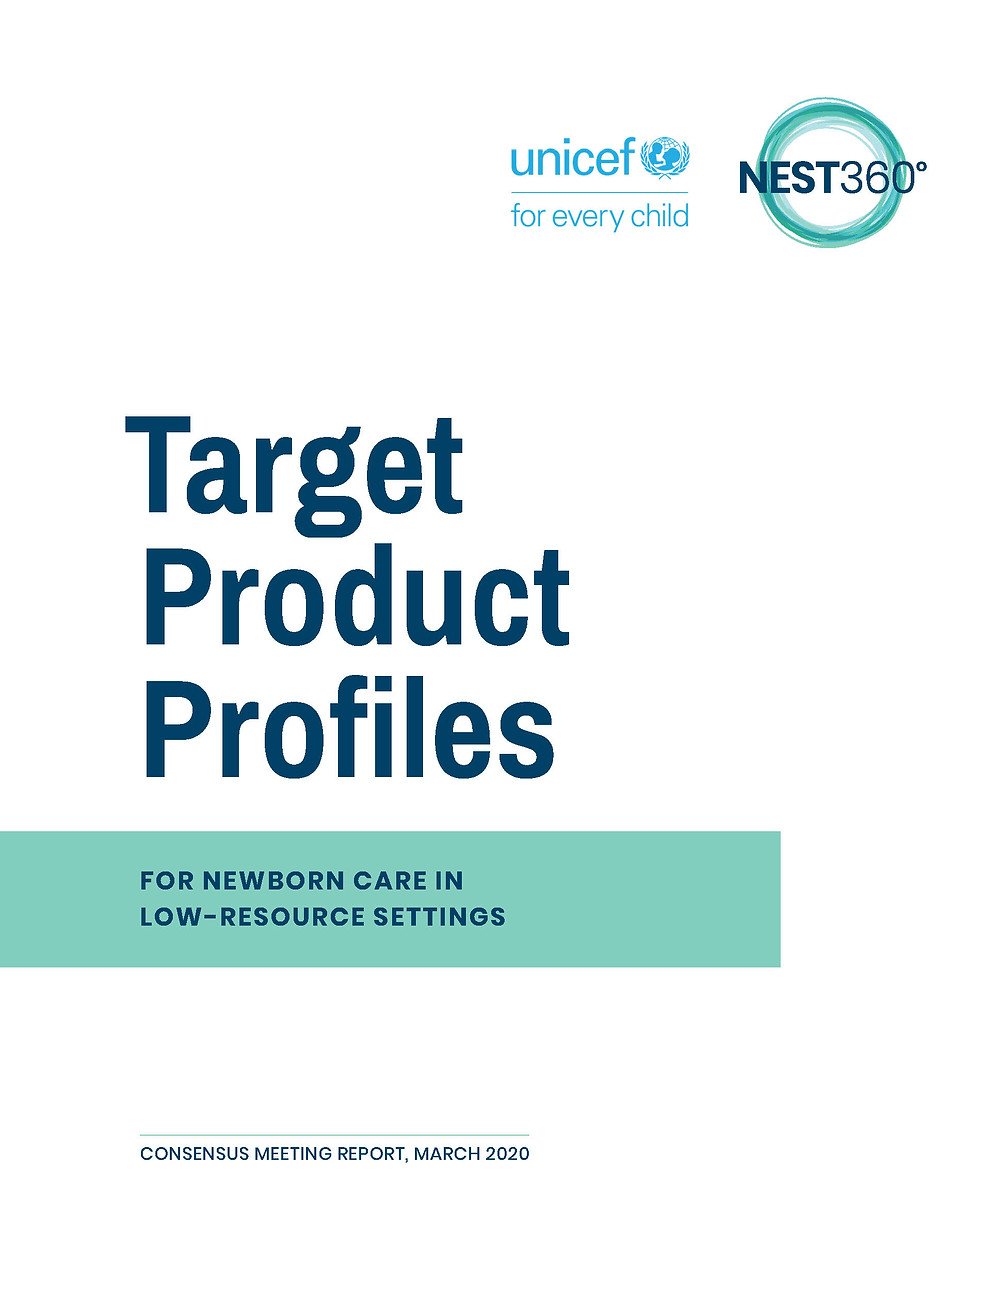 cover image for the target product profile document created by unicef and NEST